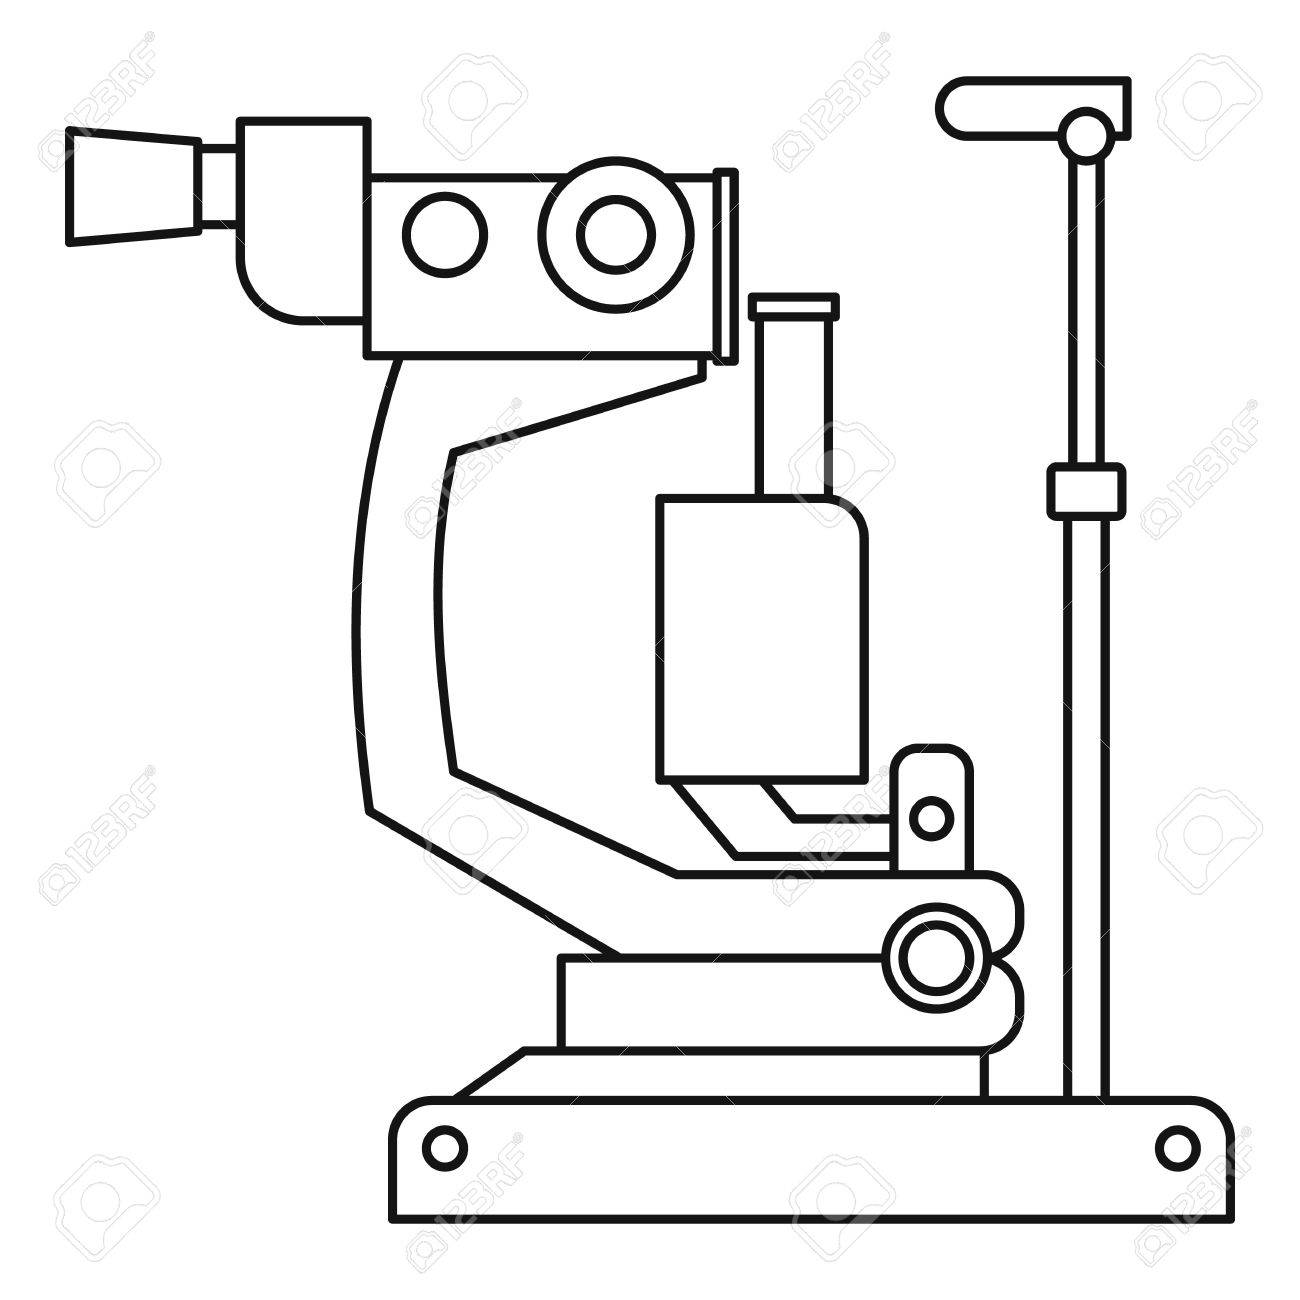 Phoropter, ophthalmic testing device machine icon  Outline illustration